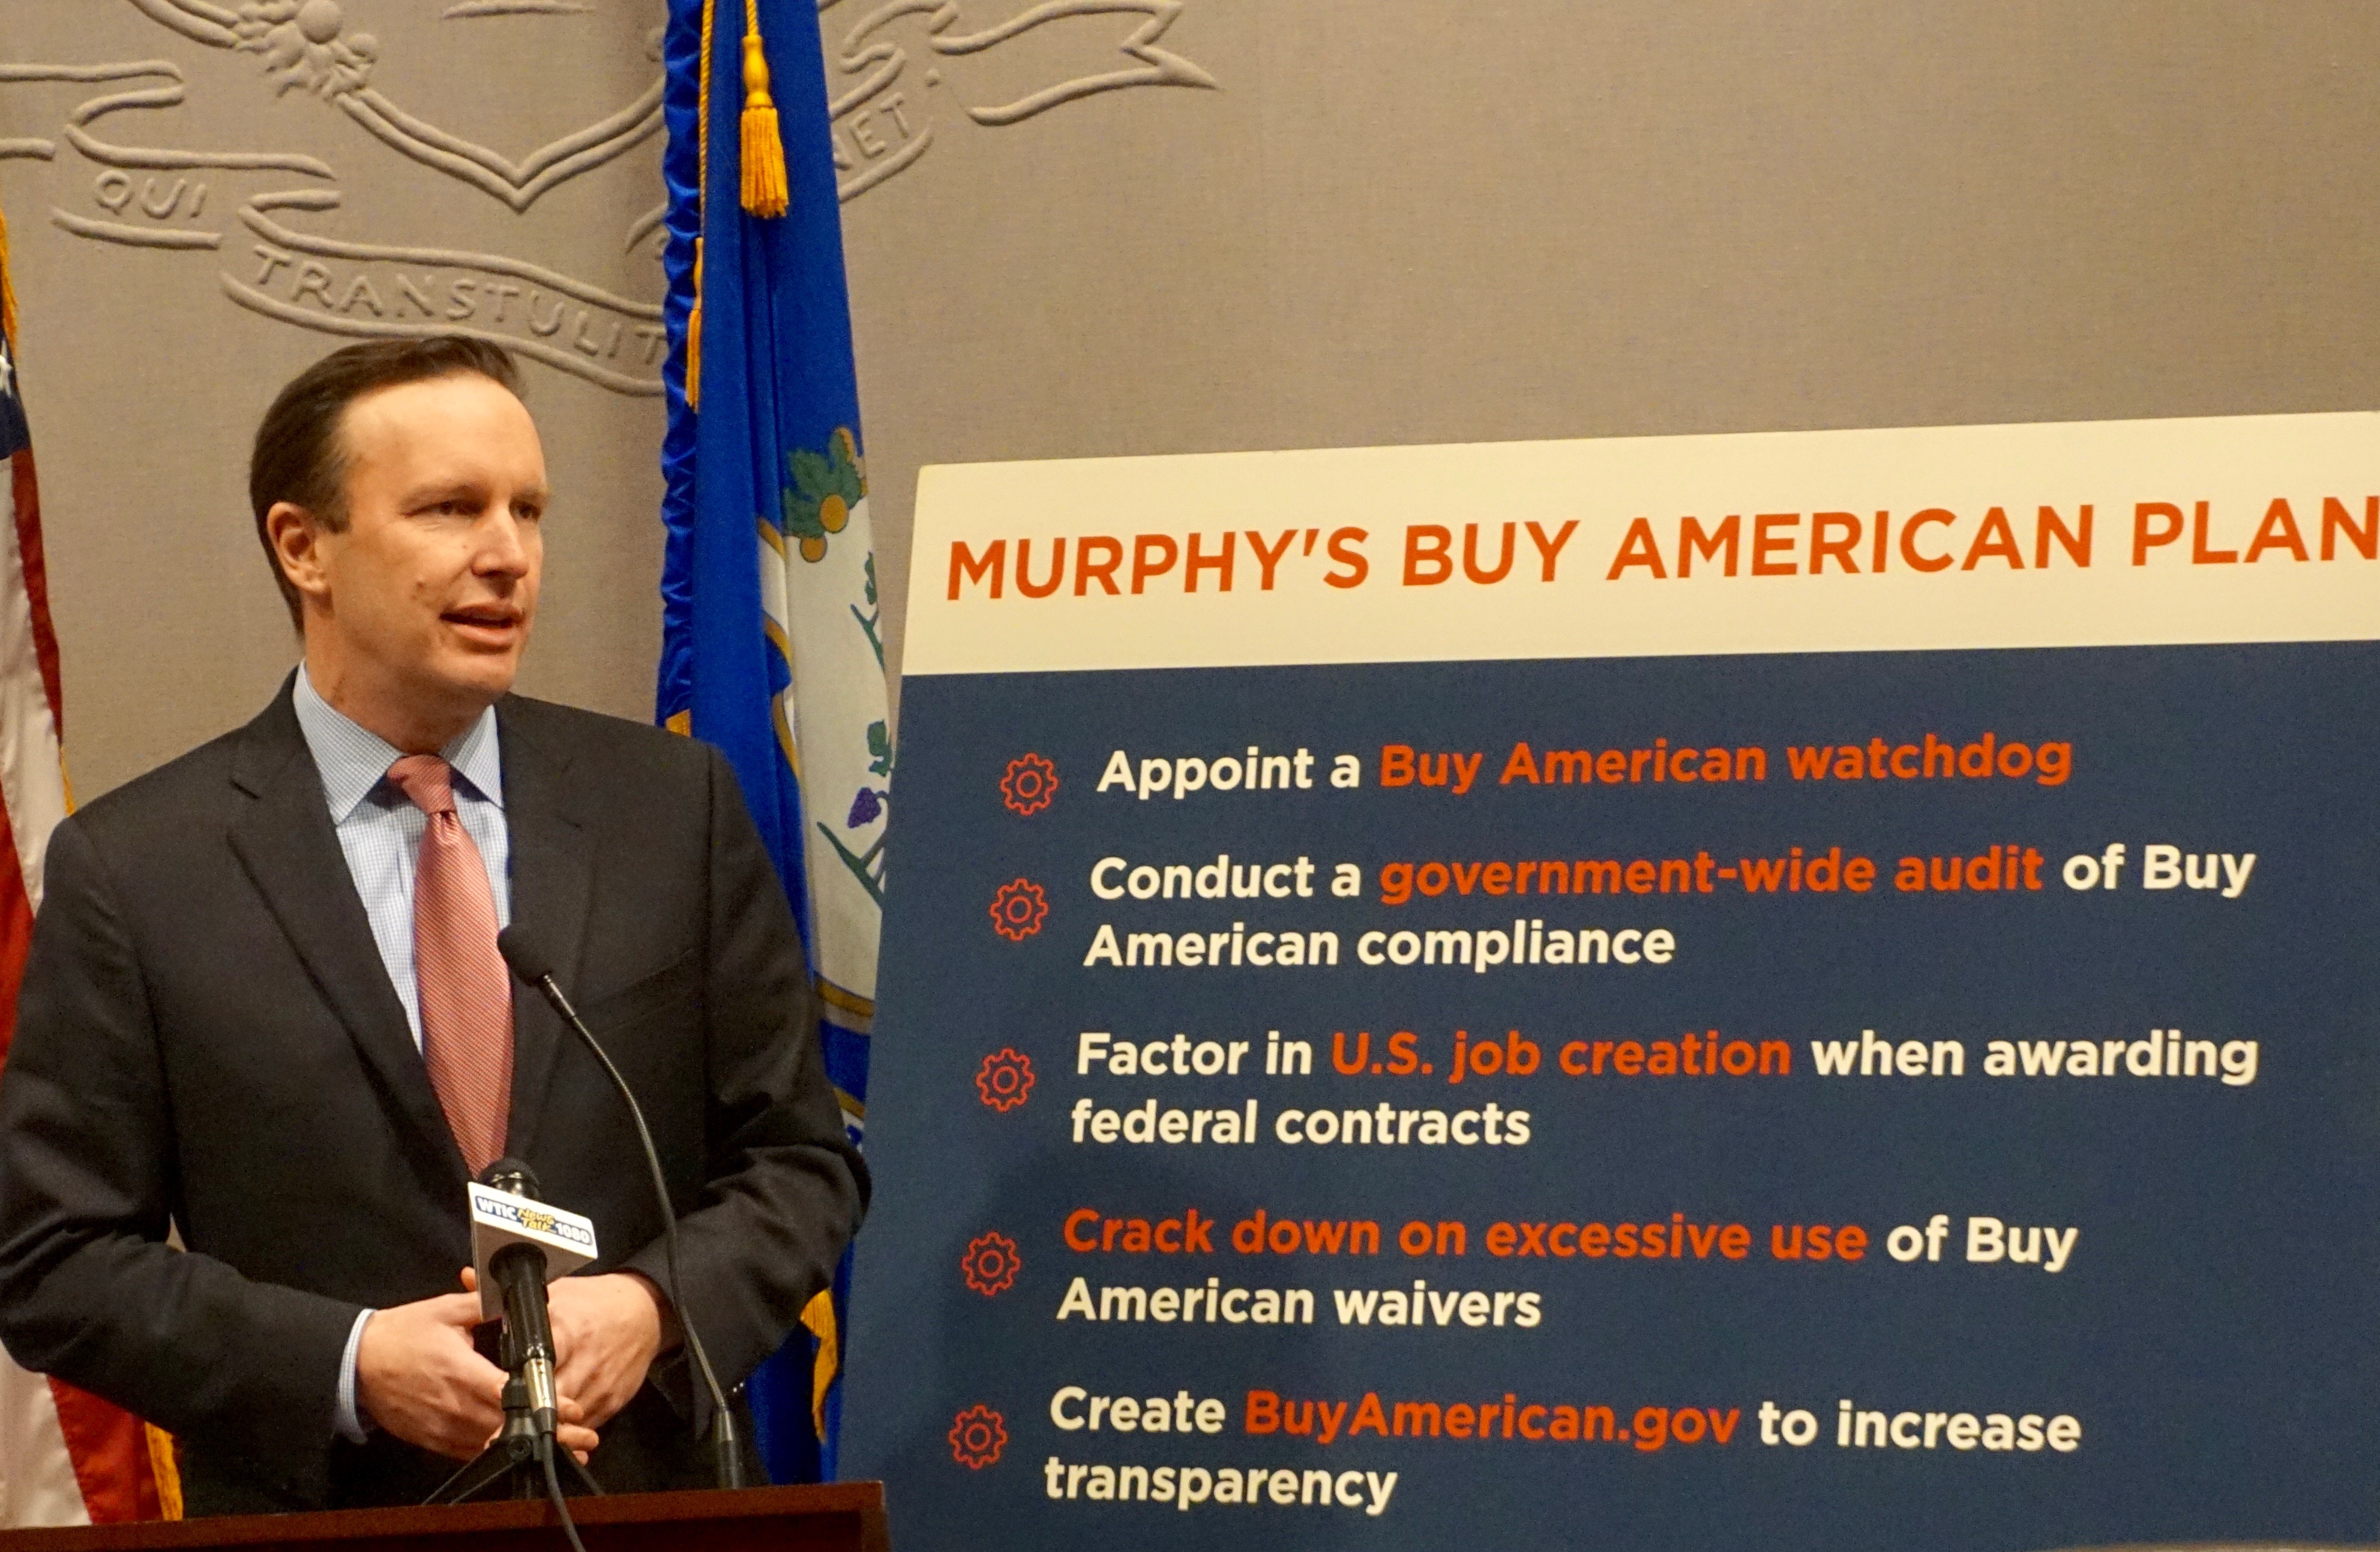 Murphy sees common cause with Trump on 'Buy American'